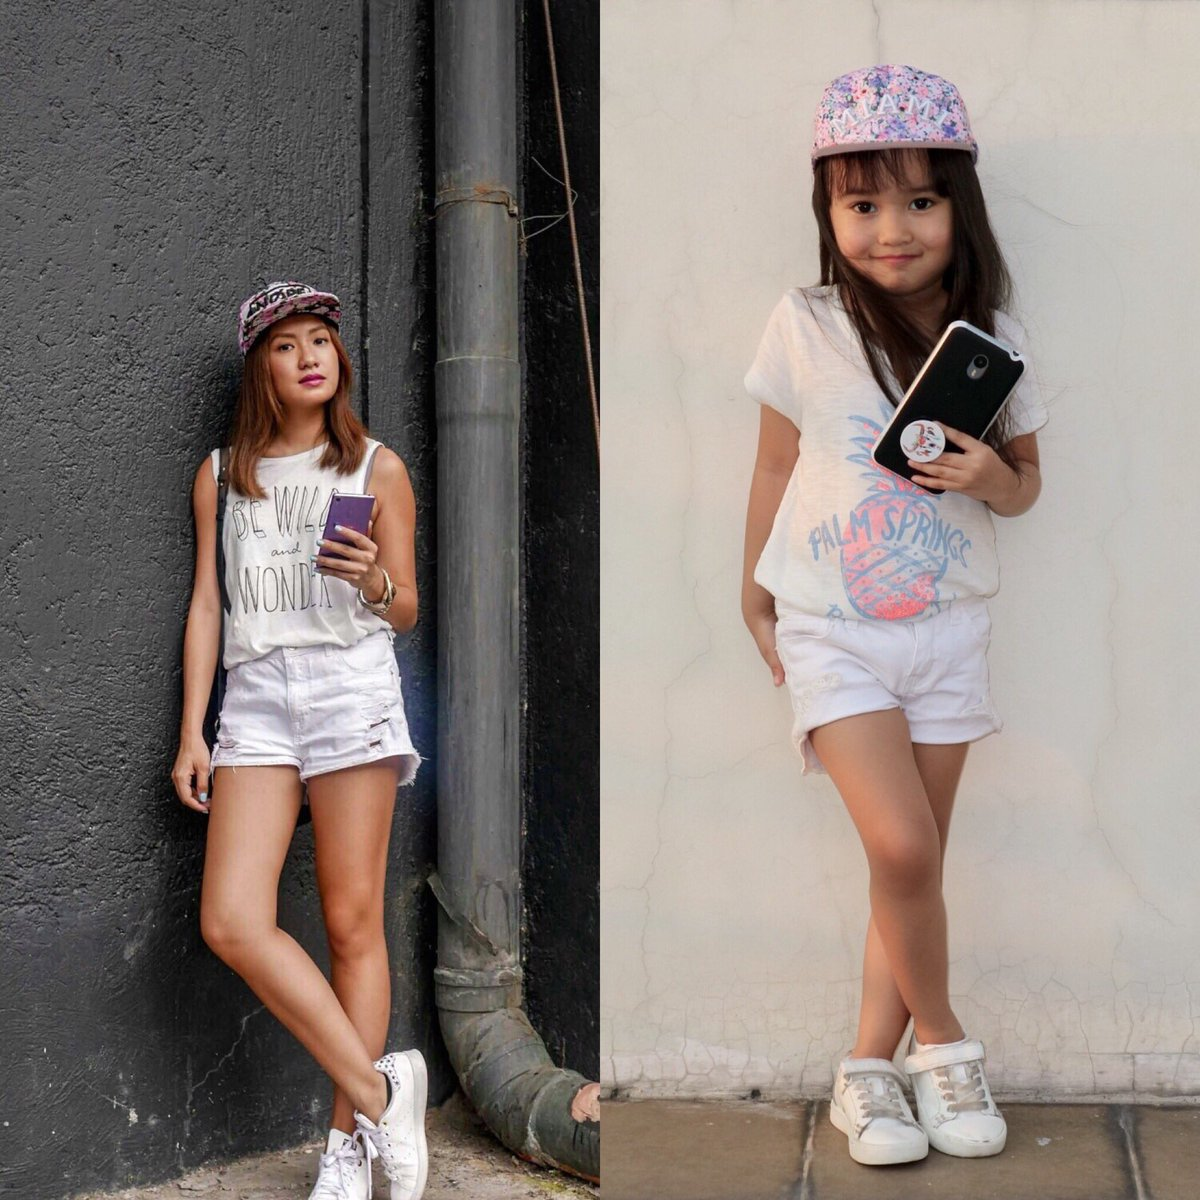 OOTD: Floral x White Photo &amp; Outfit Idea grabbed from Ms. @laureenmuy  #ootd #hmkids  #hmkidsfashion  #smkids #smkidsfashion @SMKidsFashion<br>http://pic.twitter.com/vFKH17gRMr